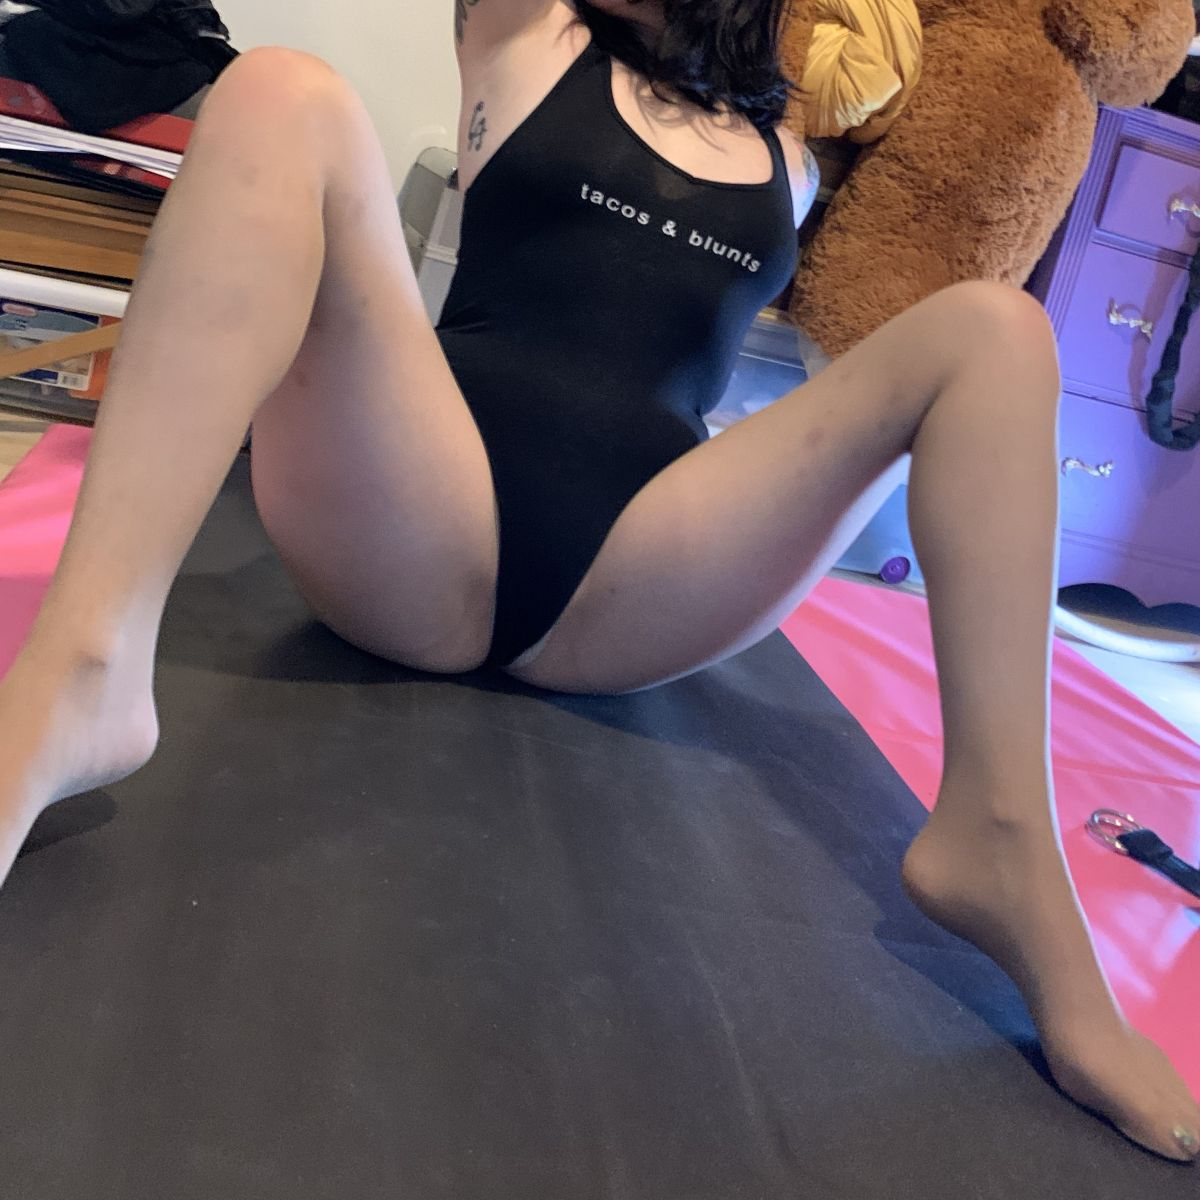 Babette noir photos and videos onlyfans leaked